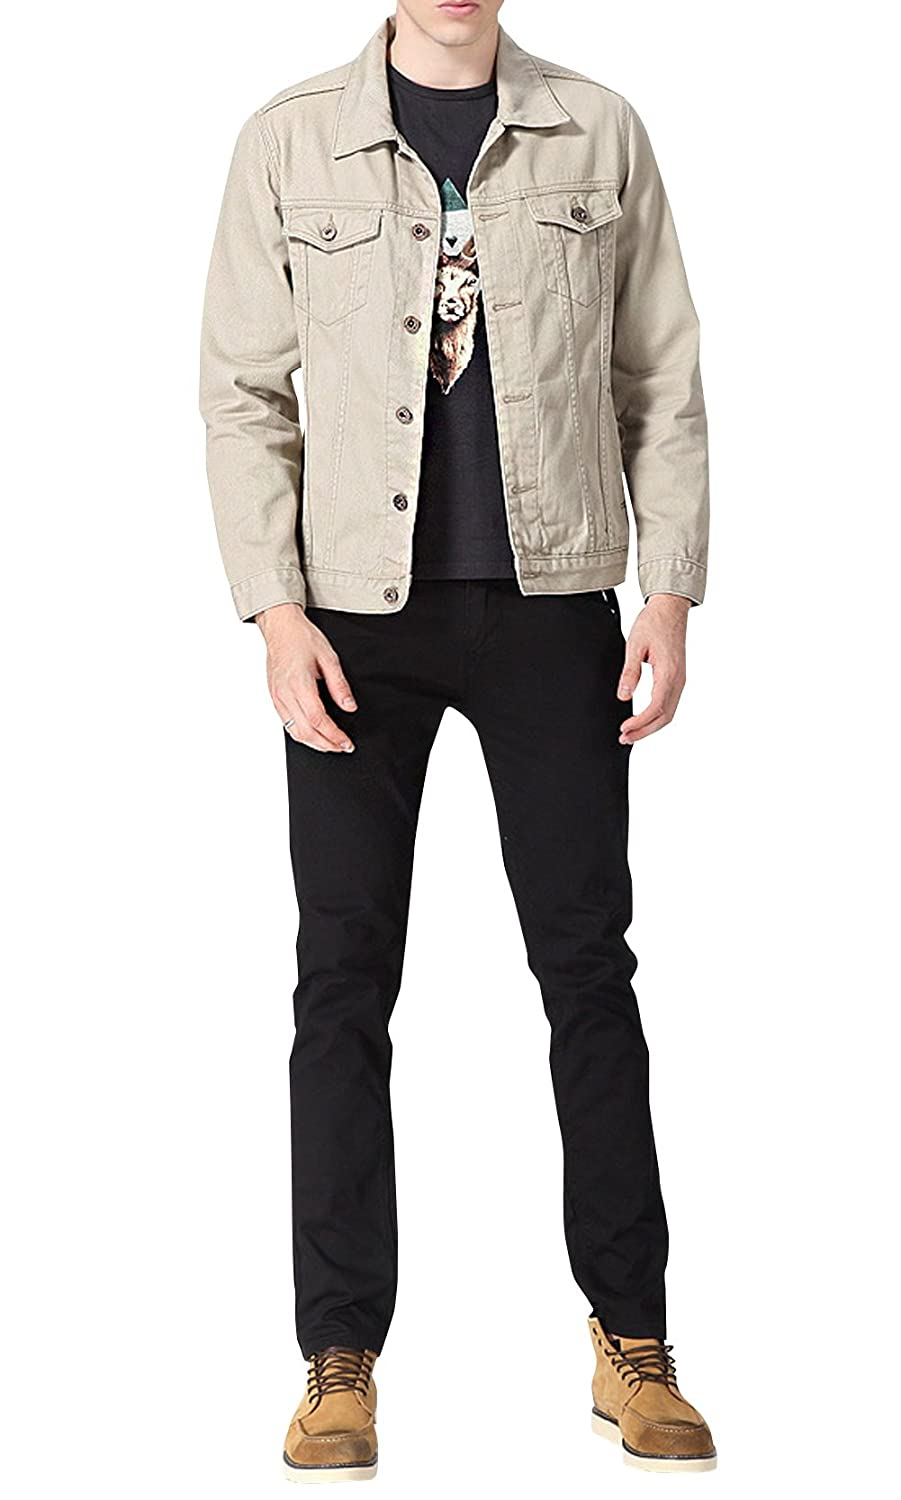 LETSQK Men's Jean Denim Jacket Cotton Casual Classic Trucker Coat